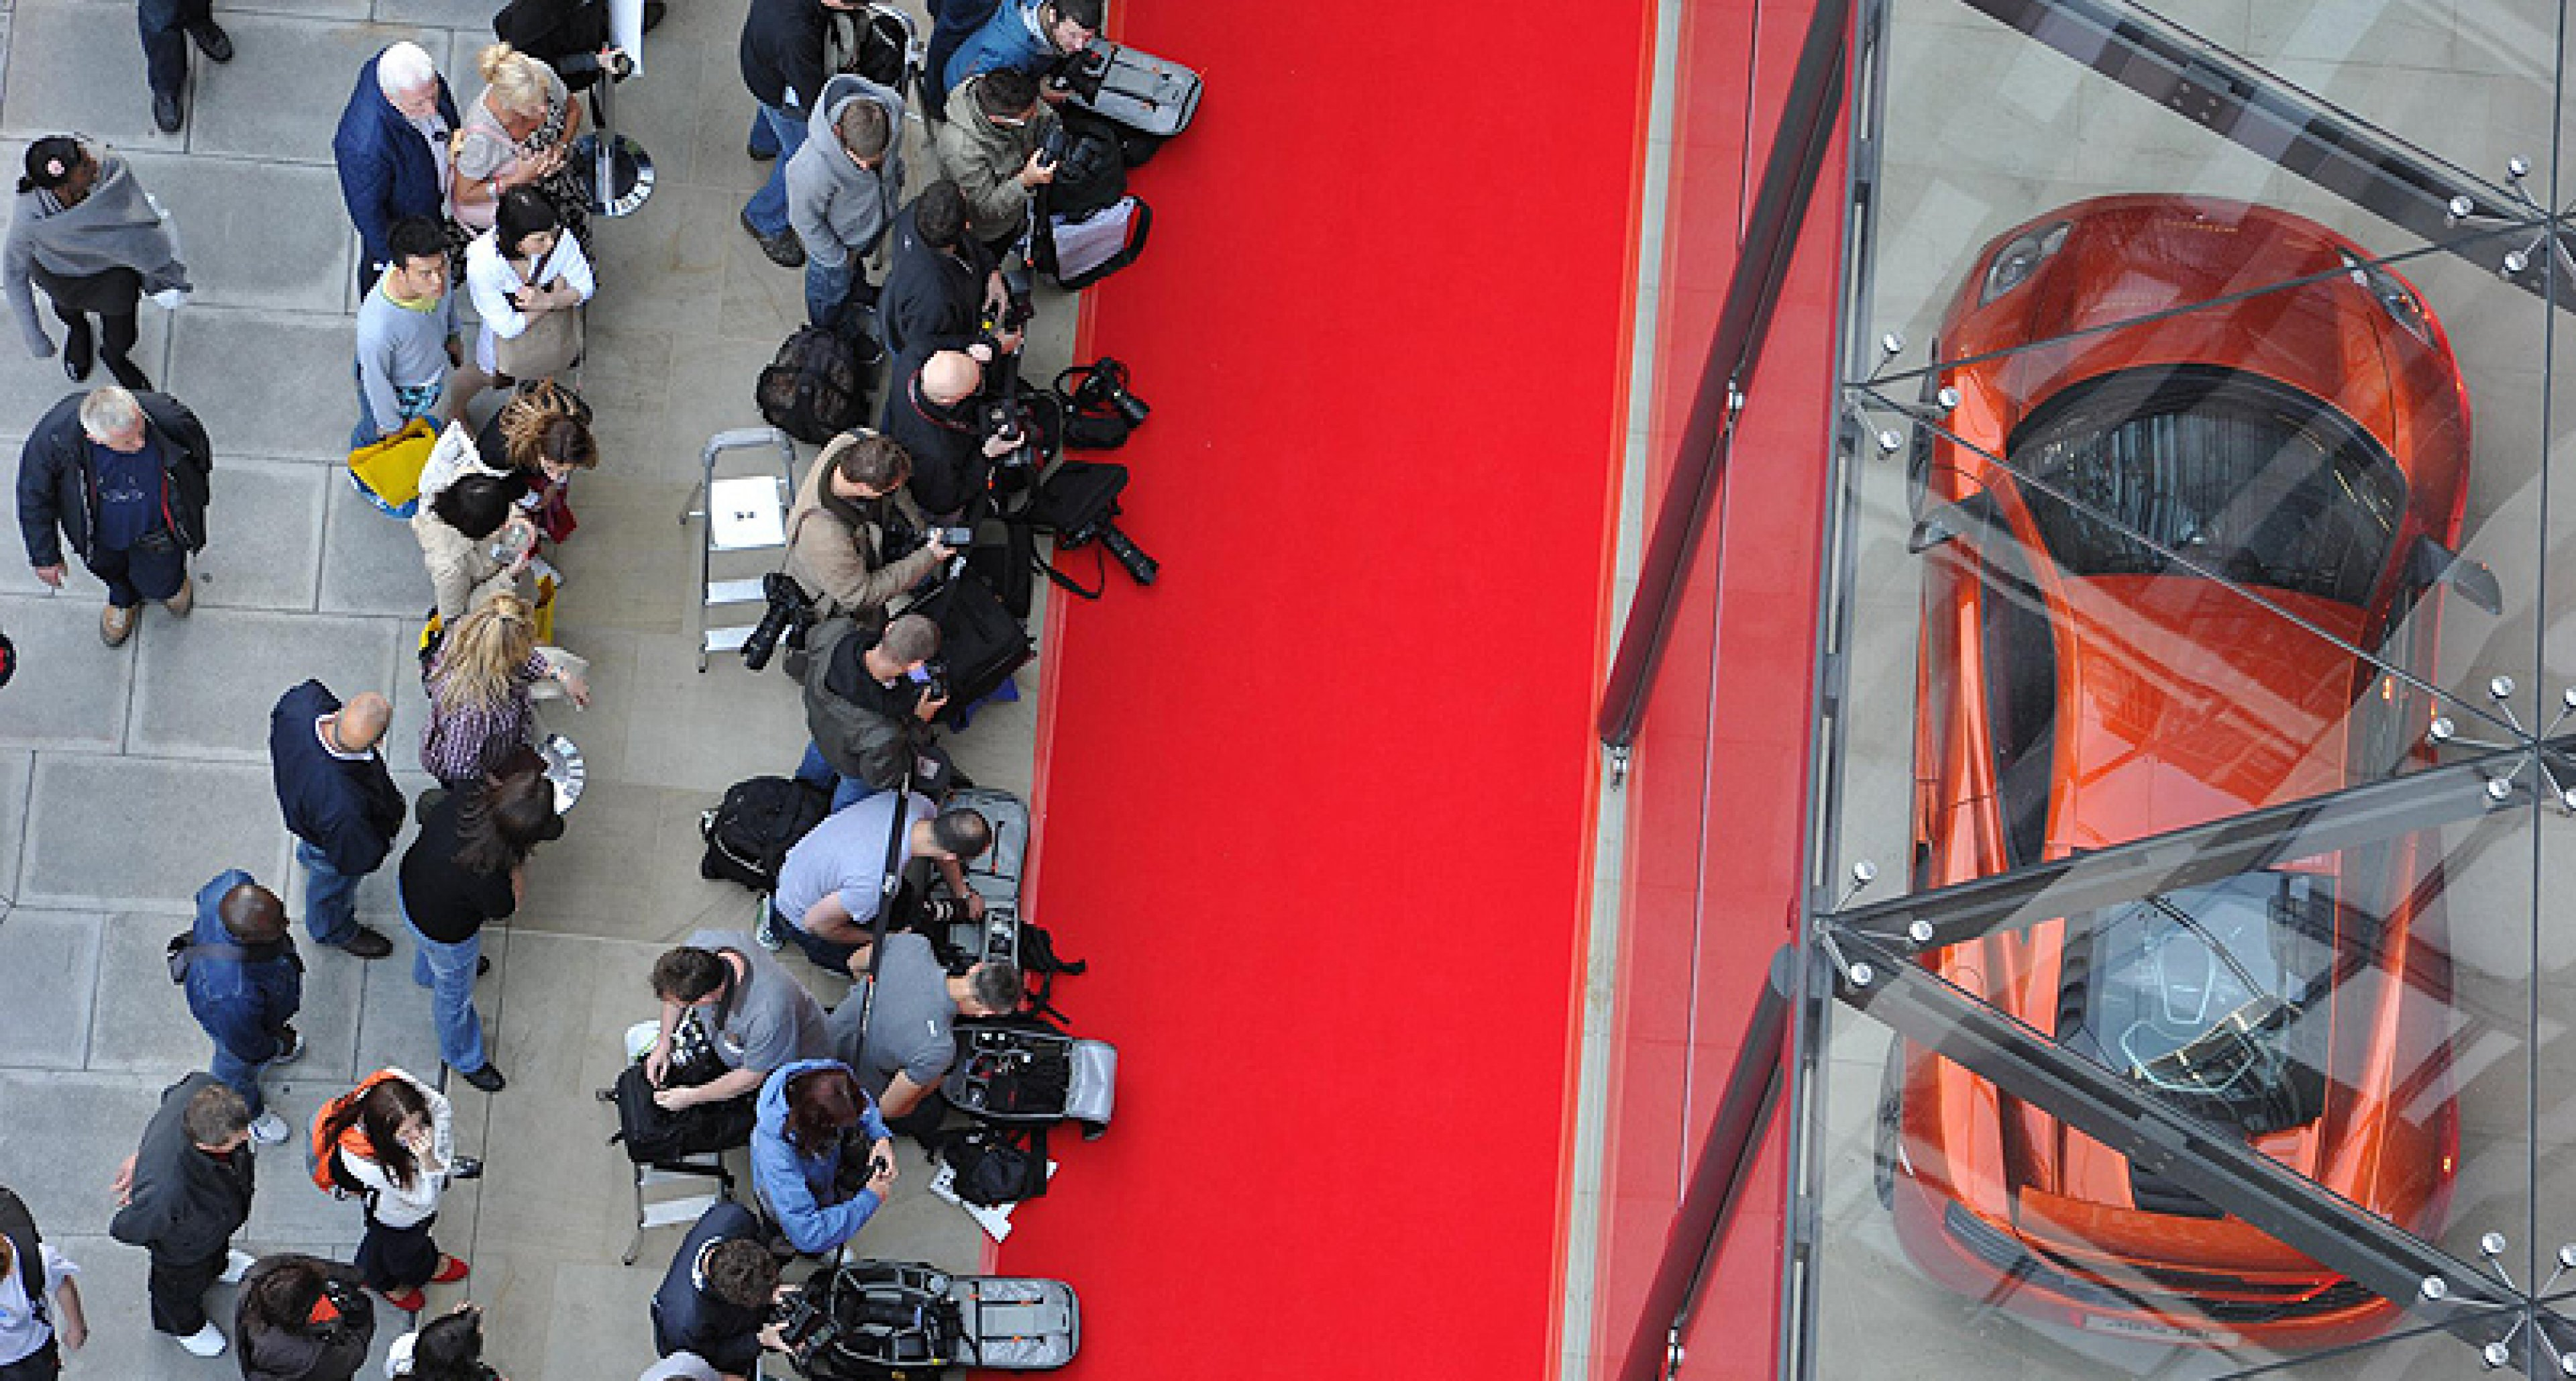 World's first McLaren showroom opens in London